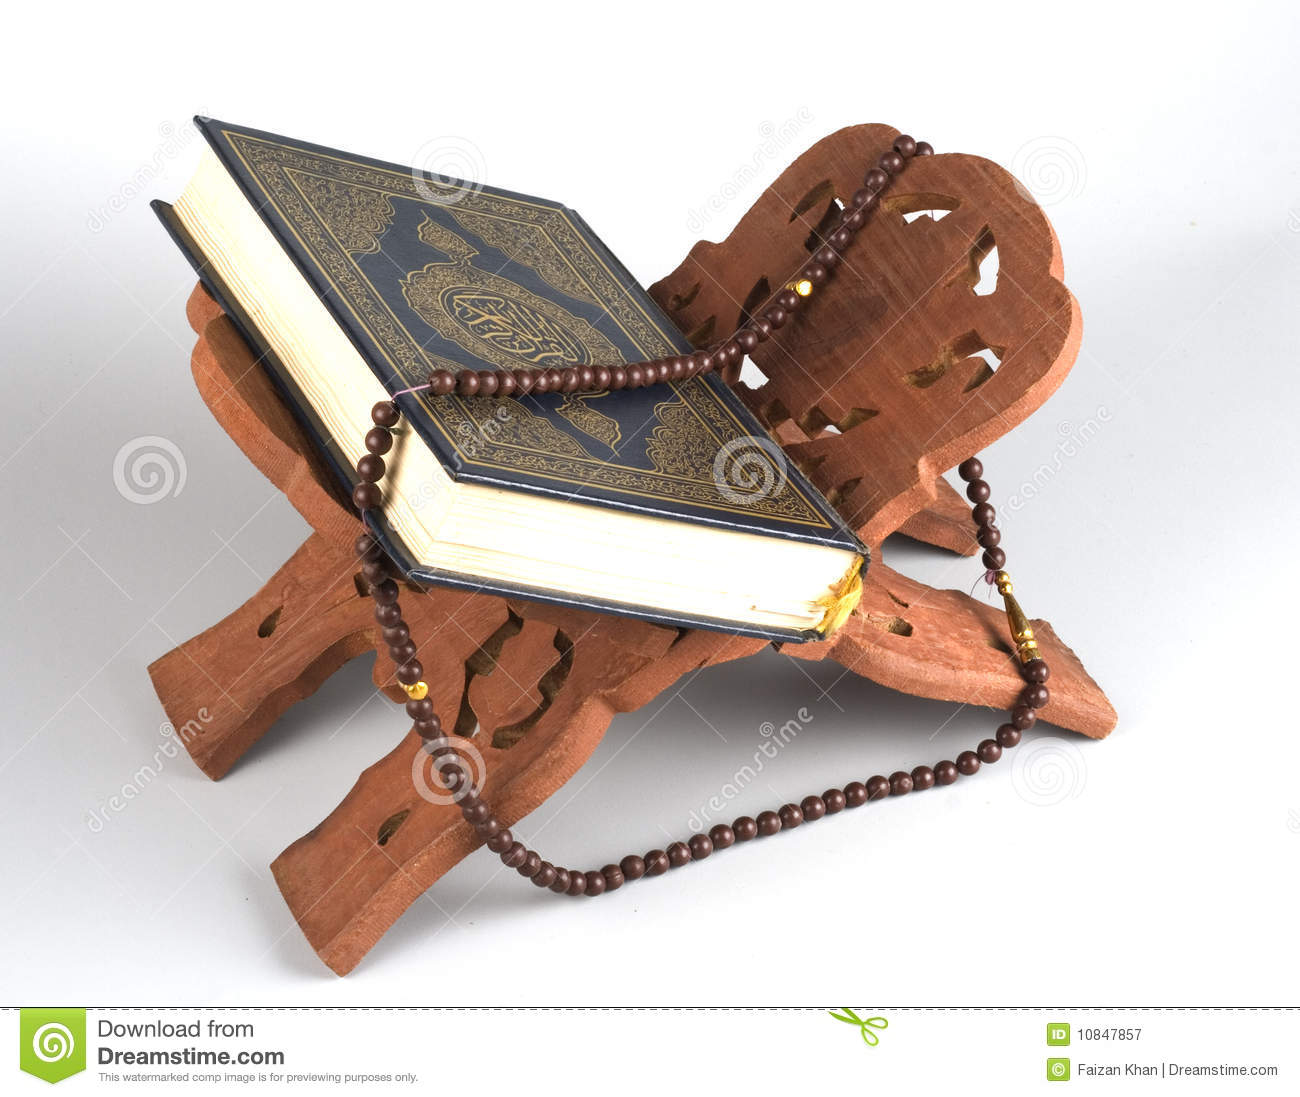 how to create holy book